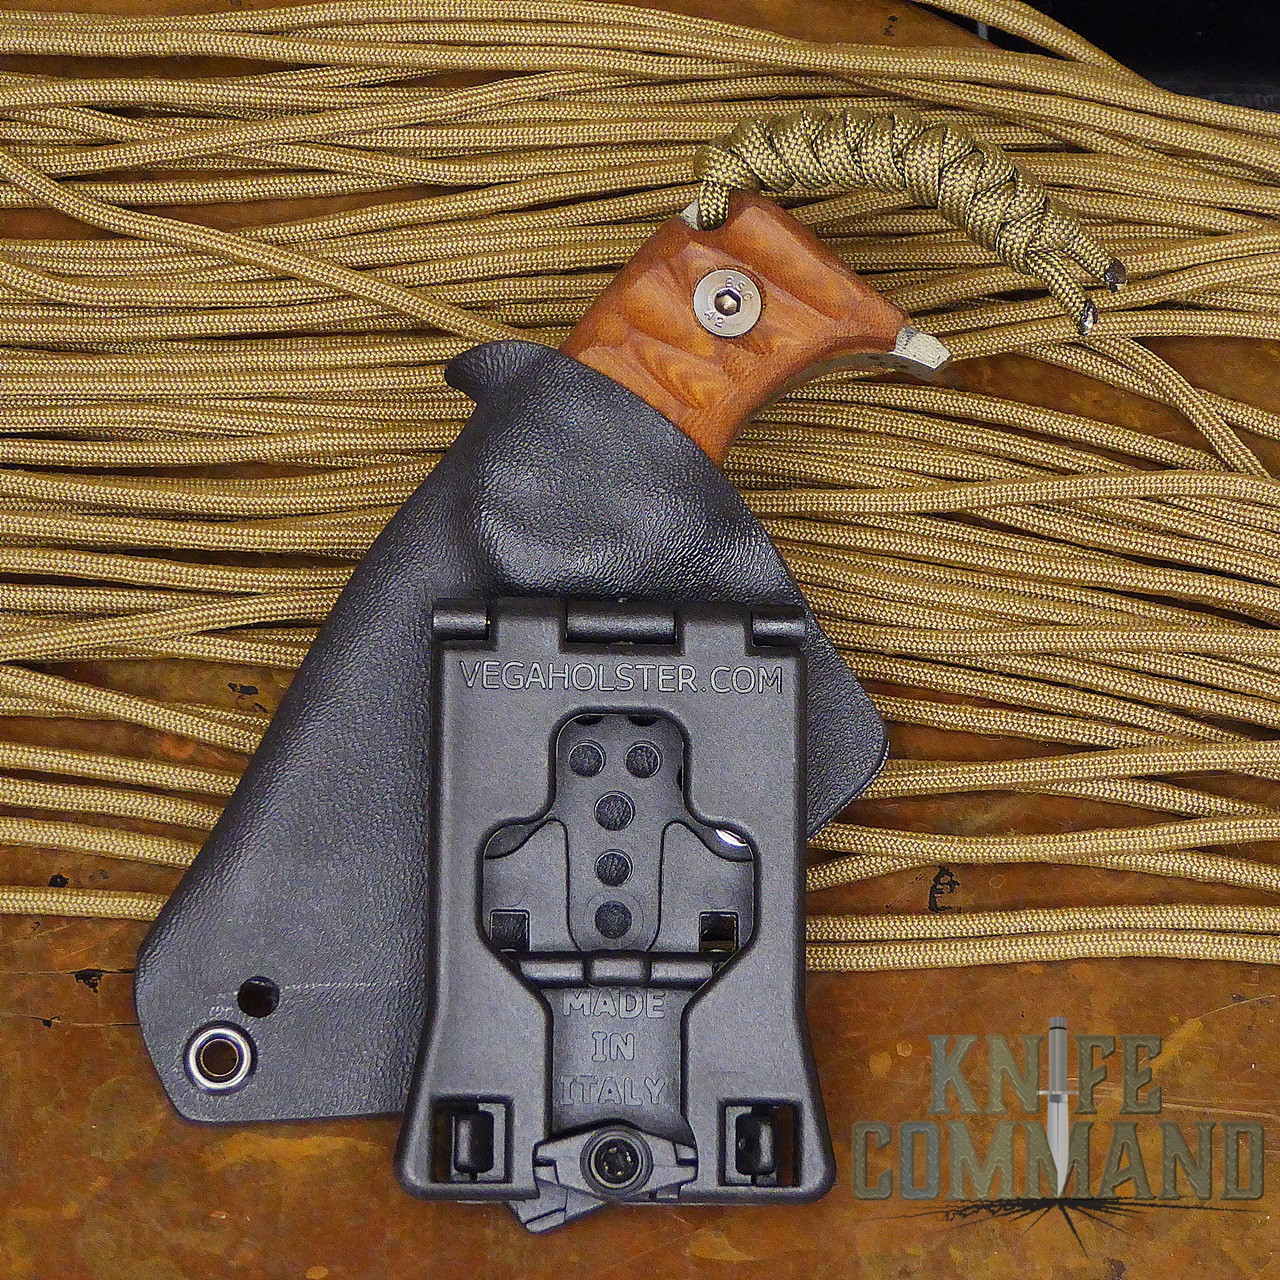 Wander Tactical Tricertops Knife Cherry Brown Micarta Black Blood Gunkote.  VegaHolster belt attachment.